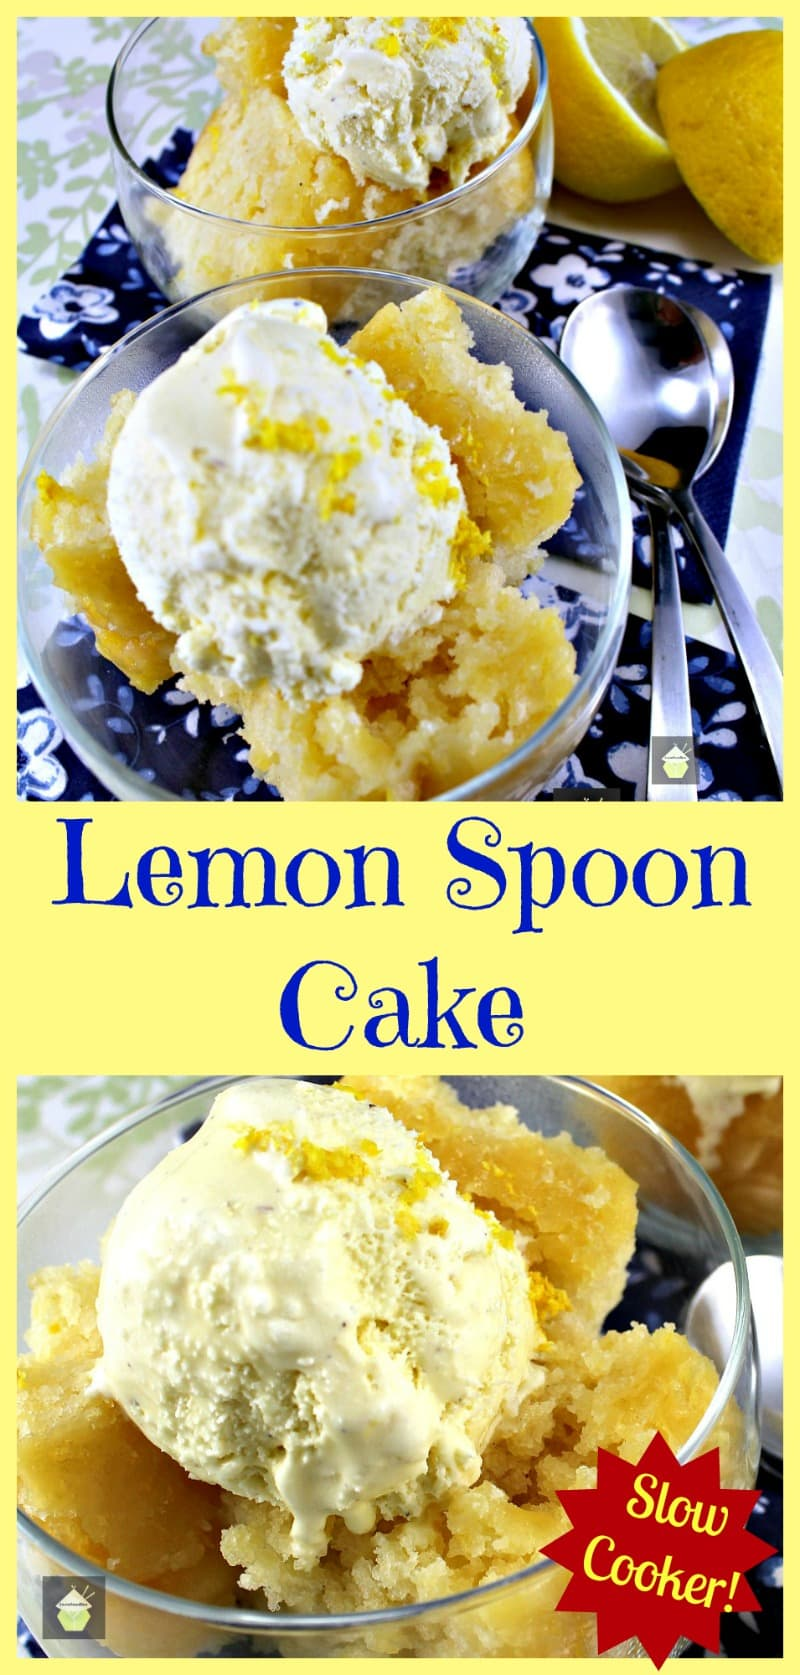 Lemon Spoon Cake. A wonderful soft and moist lemon cake made in the slow cooker. It's a very easy recipe and great tasting!